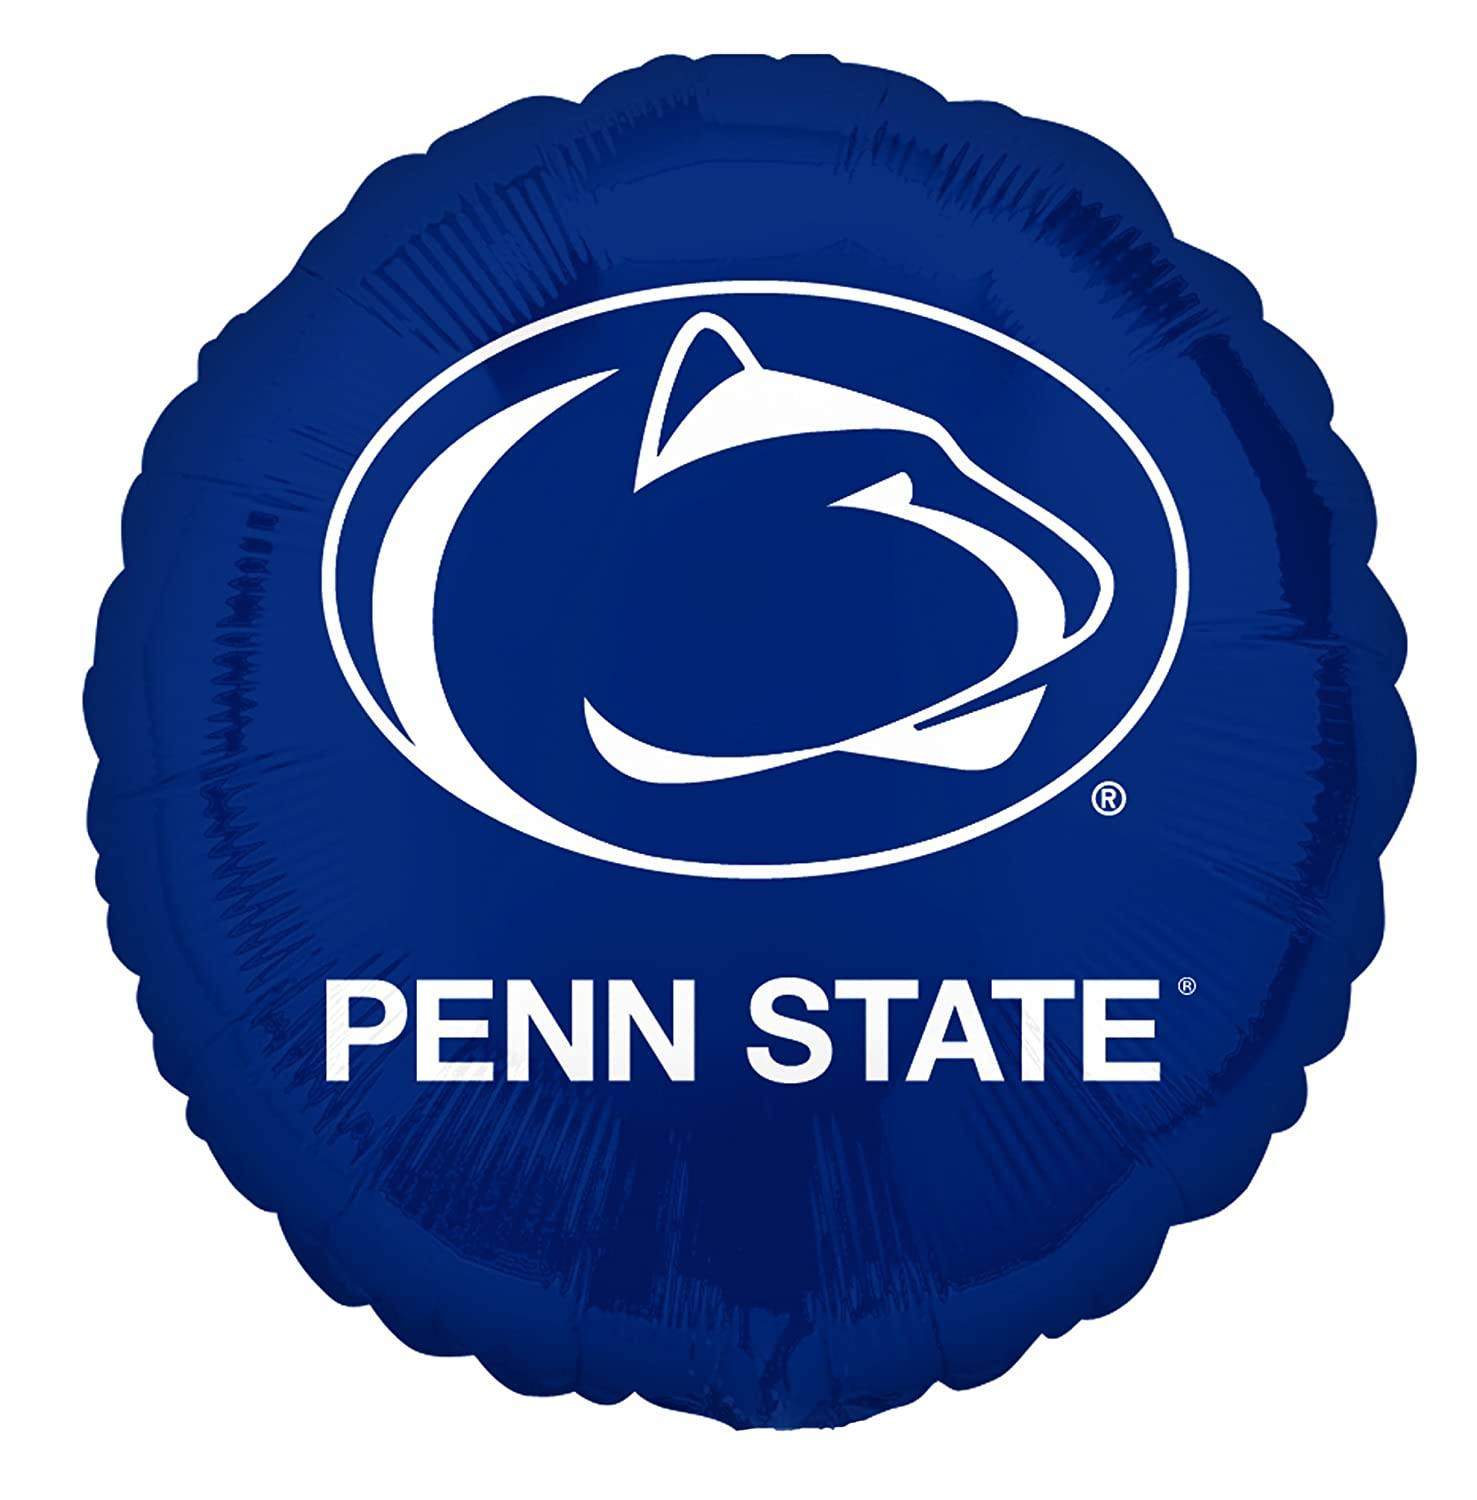 18 Multicolor 18 2426602.0 Anagram International Penn State Foil Flat Balloon